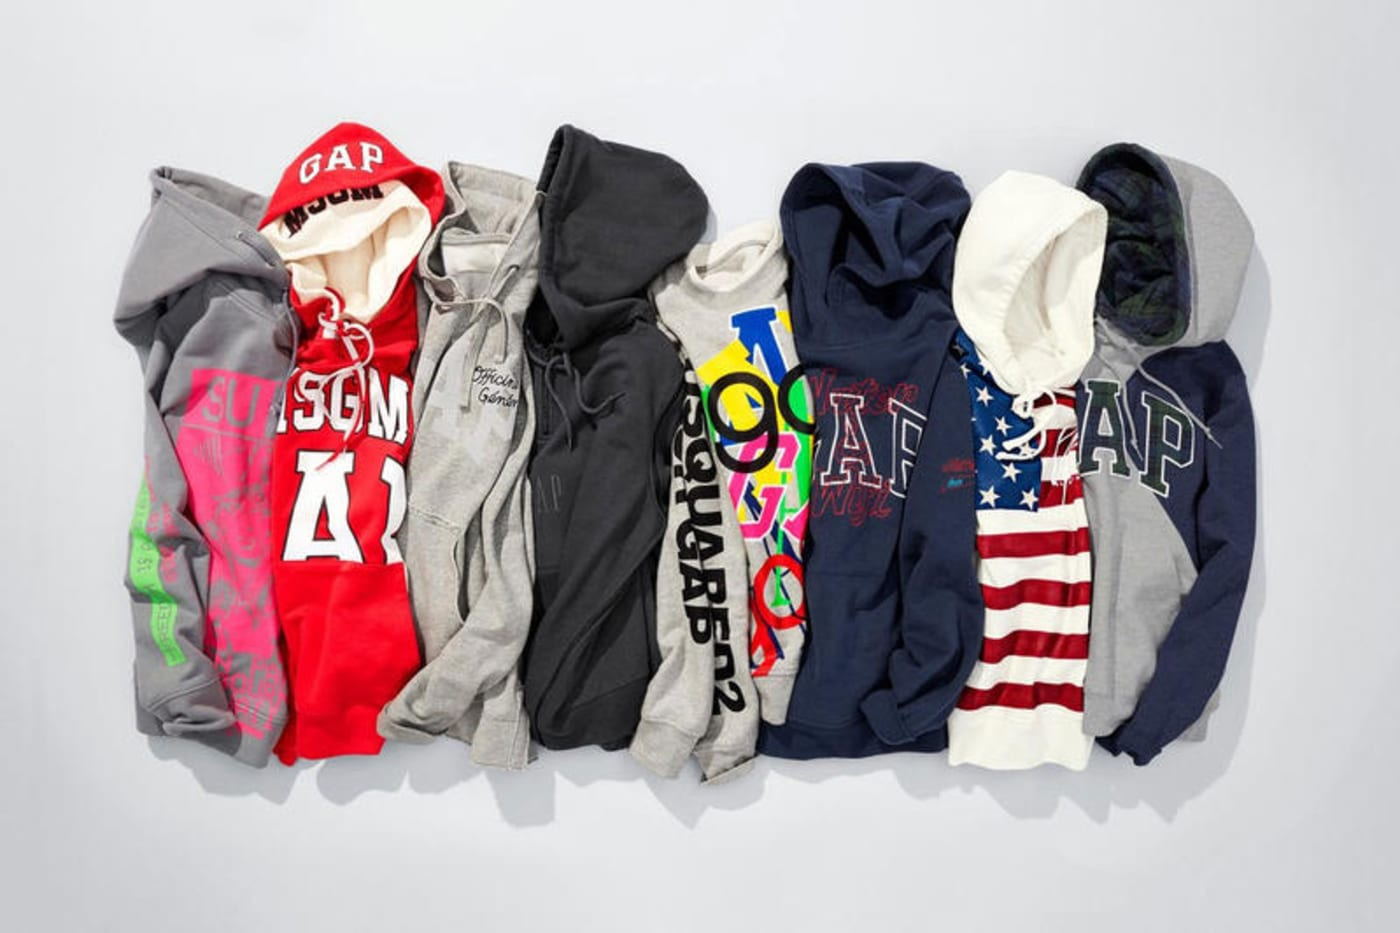 Gap Launches Its 2018 Limited Edition Collection With GQ